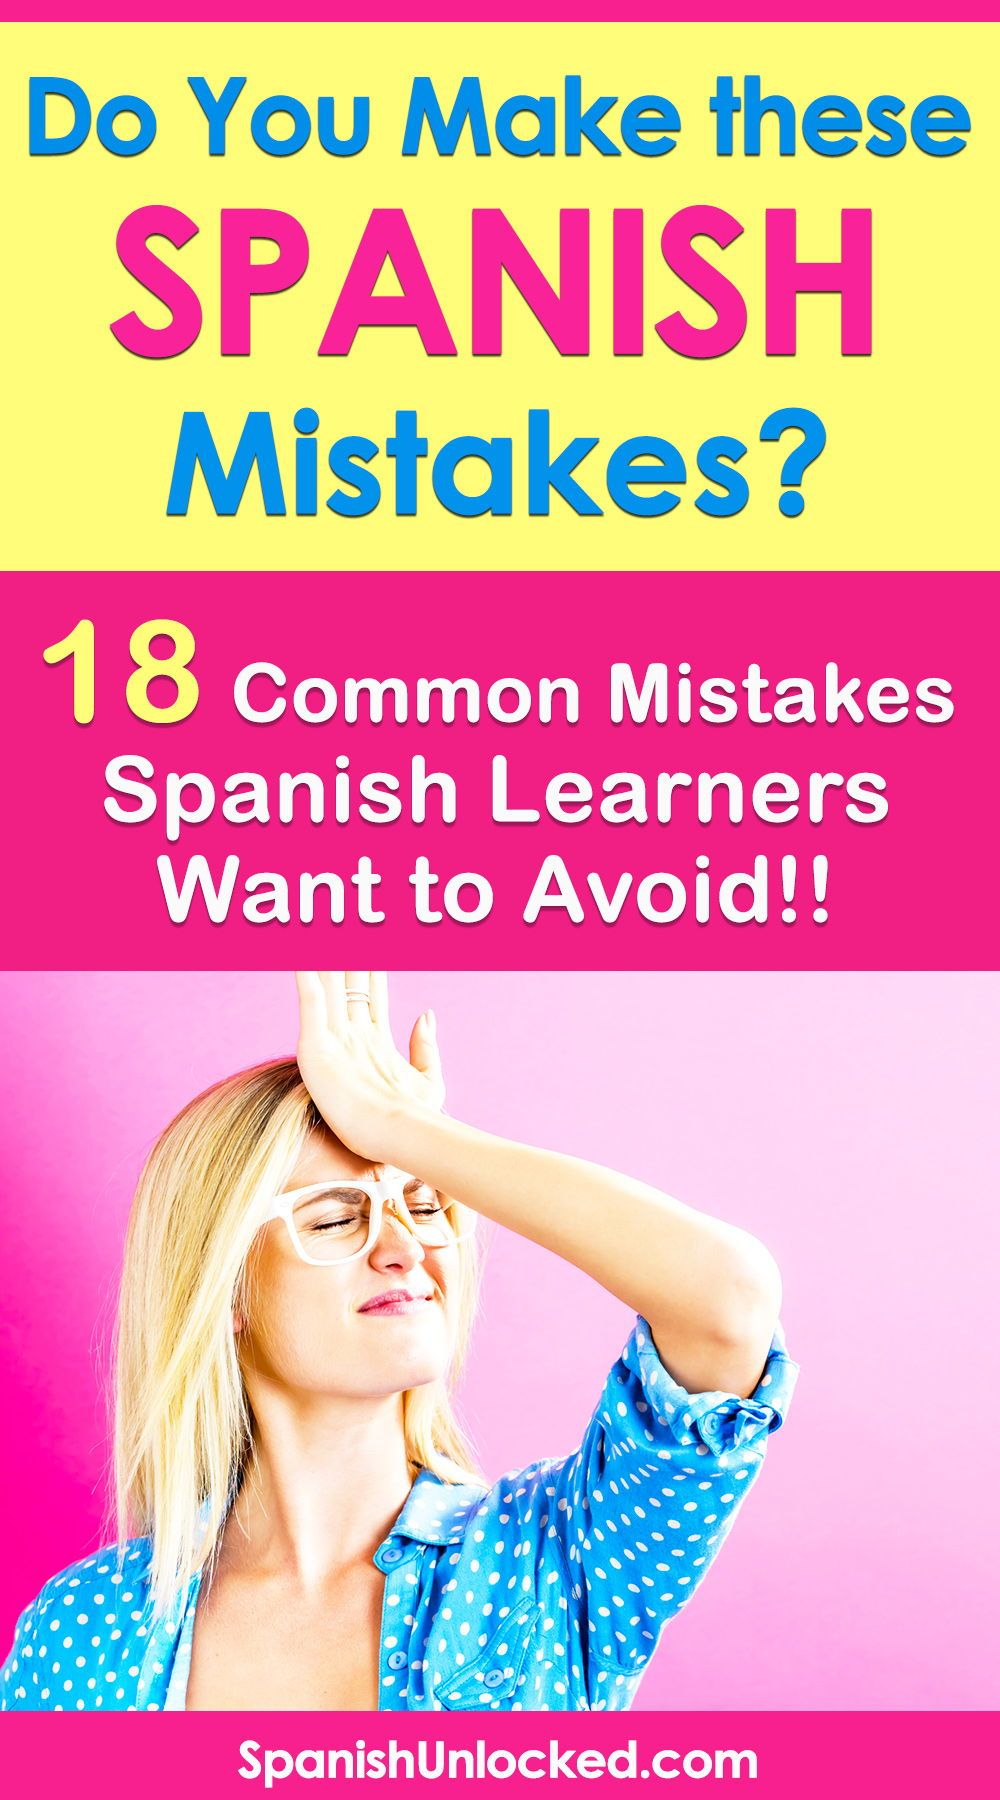 Are you learnnig Spanish? Find out 18 common mistakes most Spanish learners make in the beginner phase and avoid making these errors! Learn how to speak Spanish correctly fast and free! The common mistakes include pronunciation, grammar, verb and word usage, and more. #spanishlanguage #spanishgrammar #learnspanish #learningspanish #learningtips #learningideas #bilingual #forbeginners #learningspanish